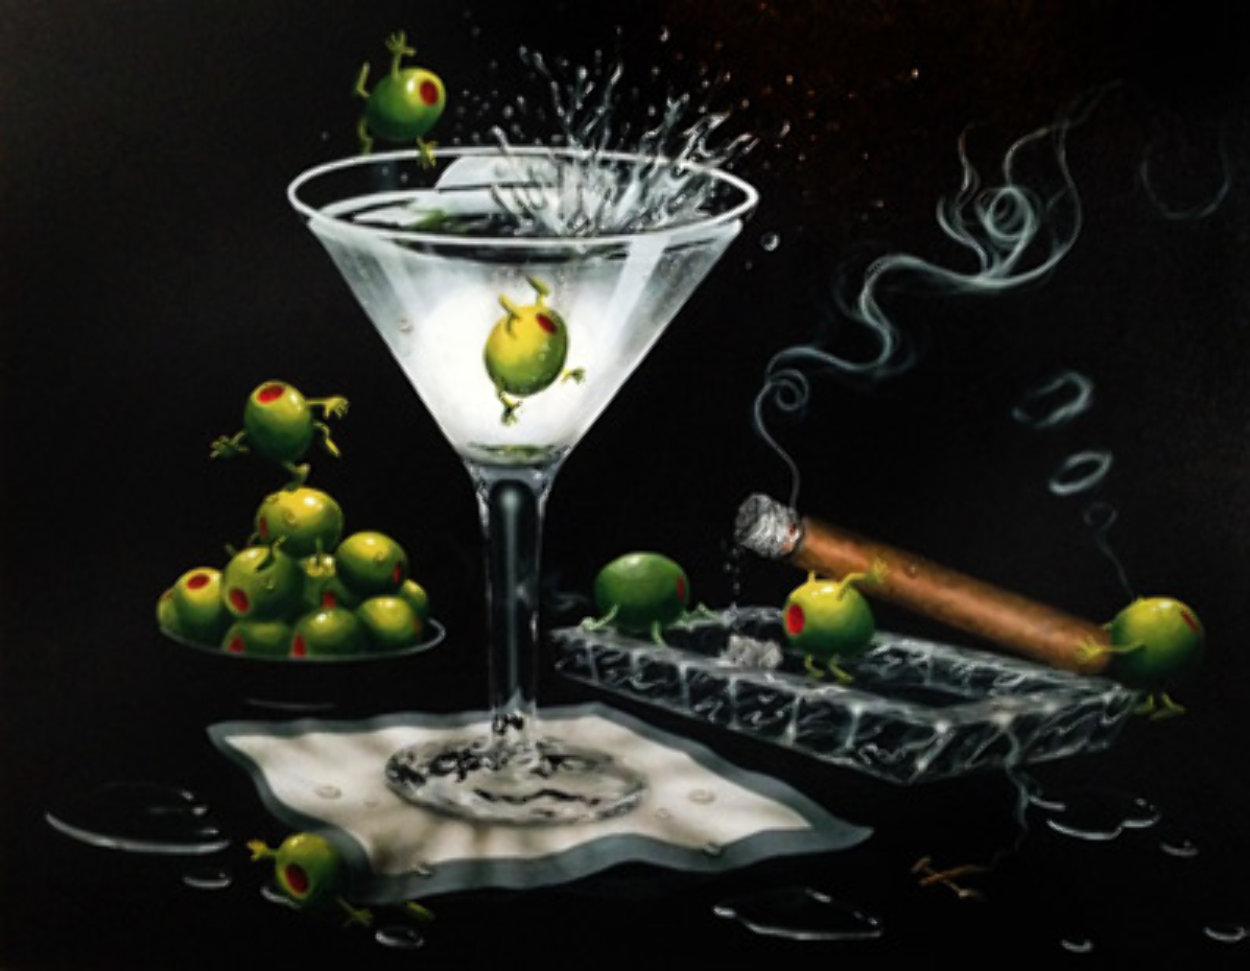 Olive Party II AP 2000 Limited Edition Print by Michael Godard